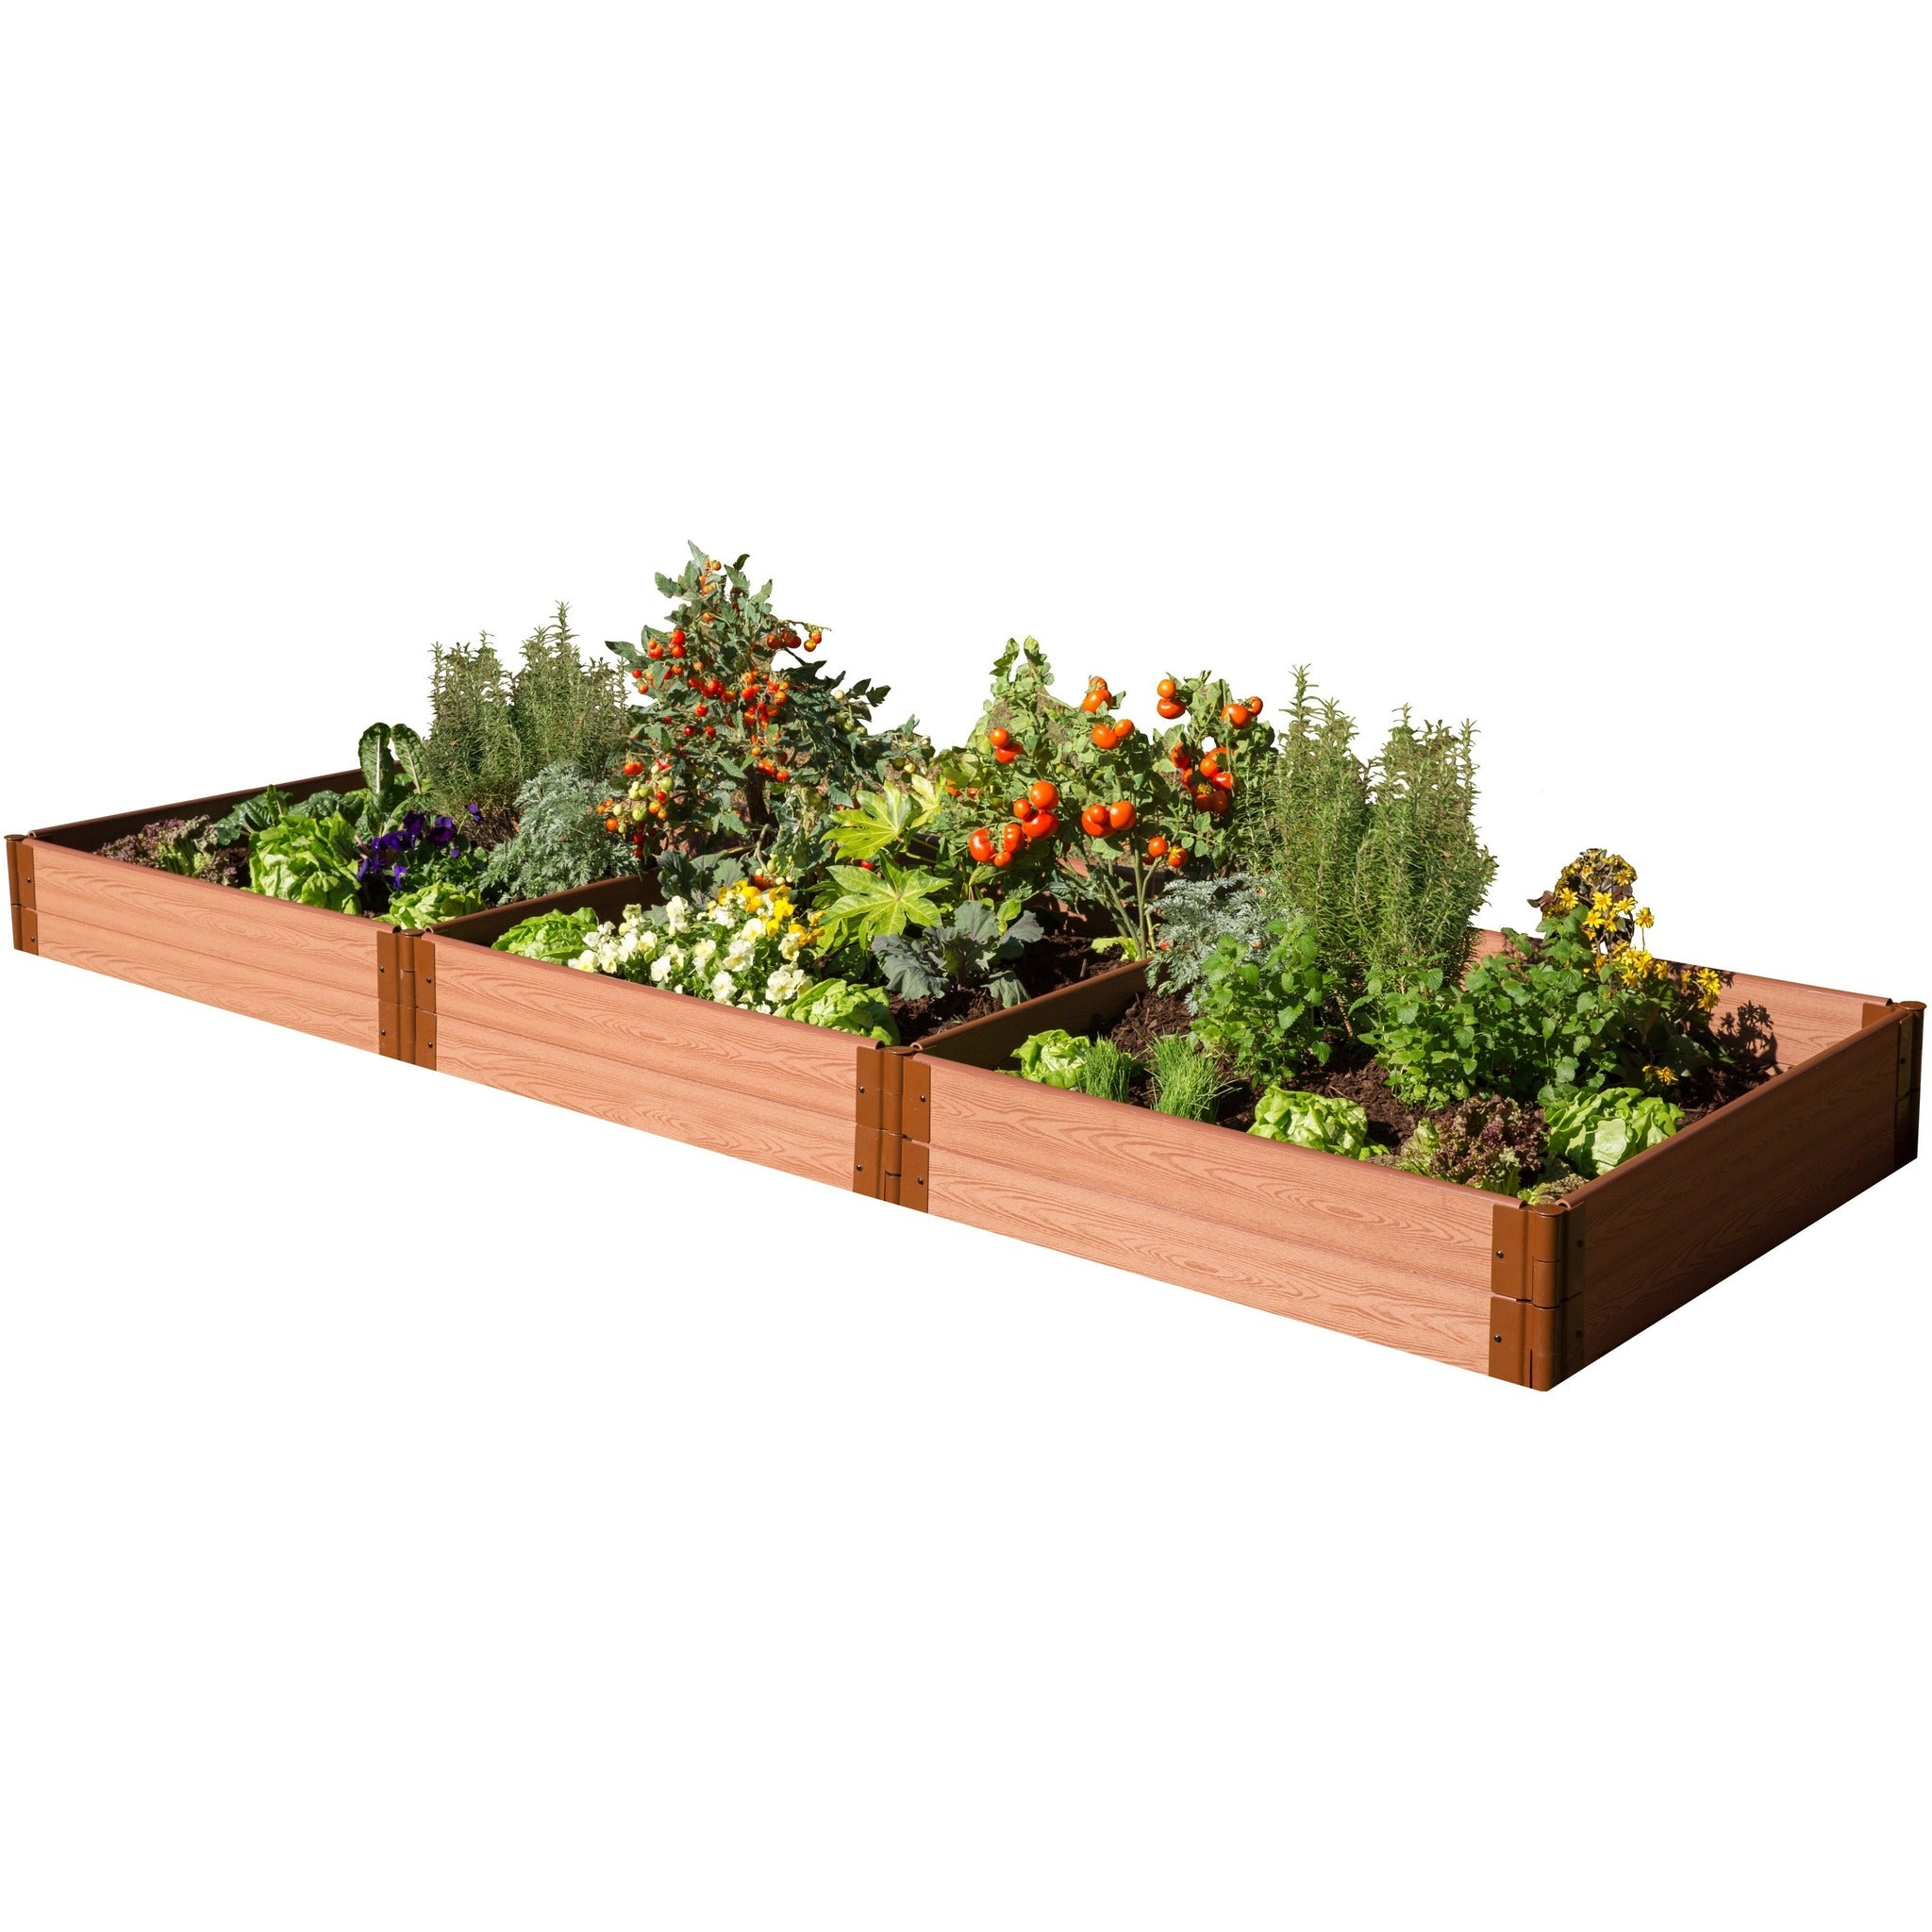 plans green off ground for to above disable with bed garden raised how x round tips gardening unique beds build handicapped vegetable home designs of the head and cedar elderly planter elevated